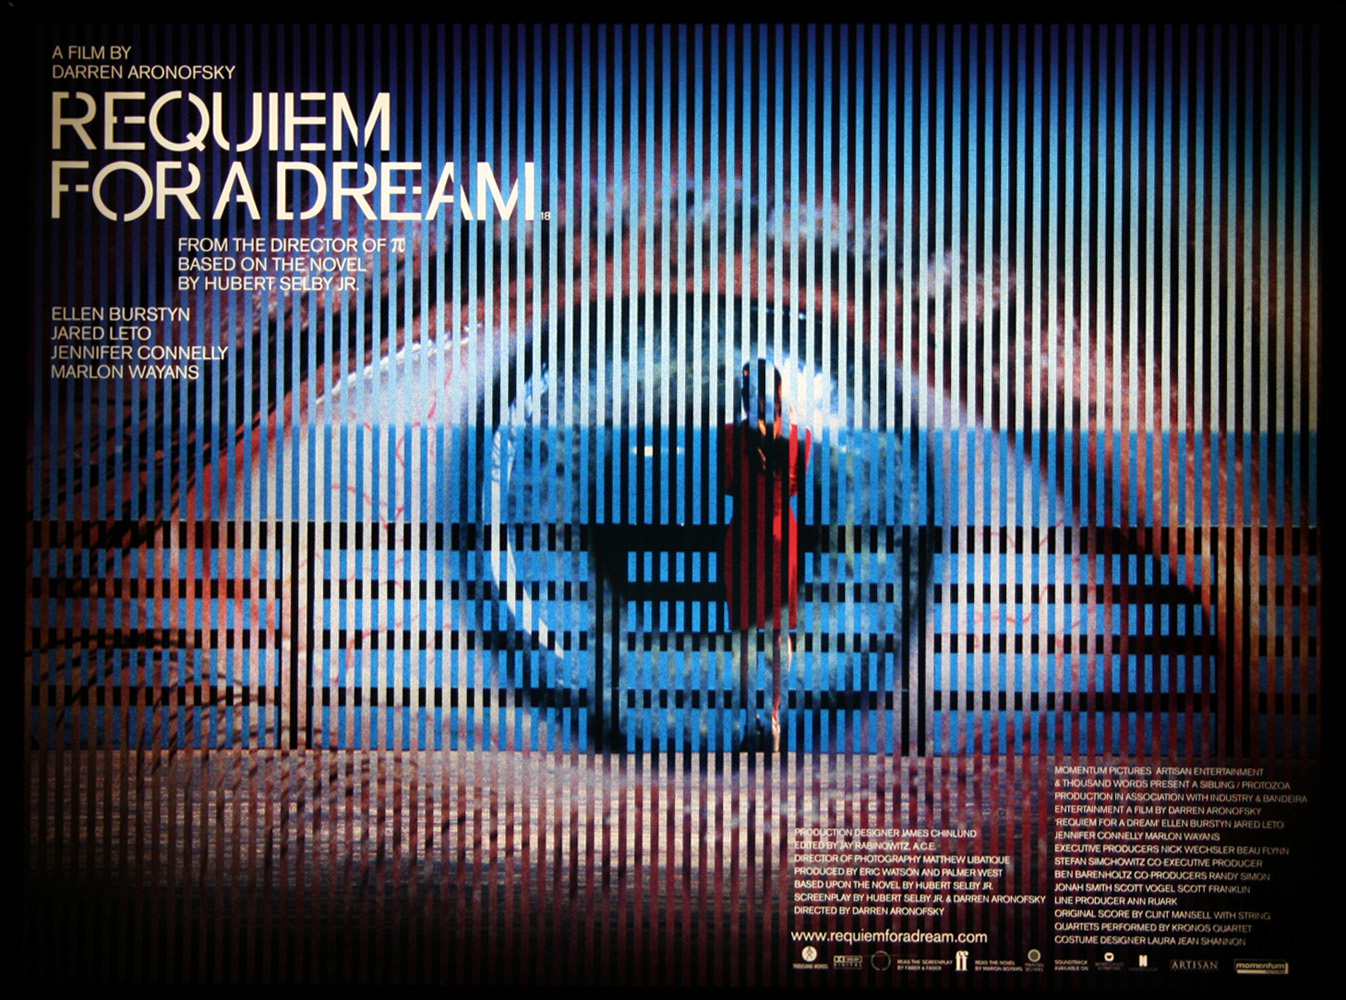 Requiem for a dream | Darren Aronofsky